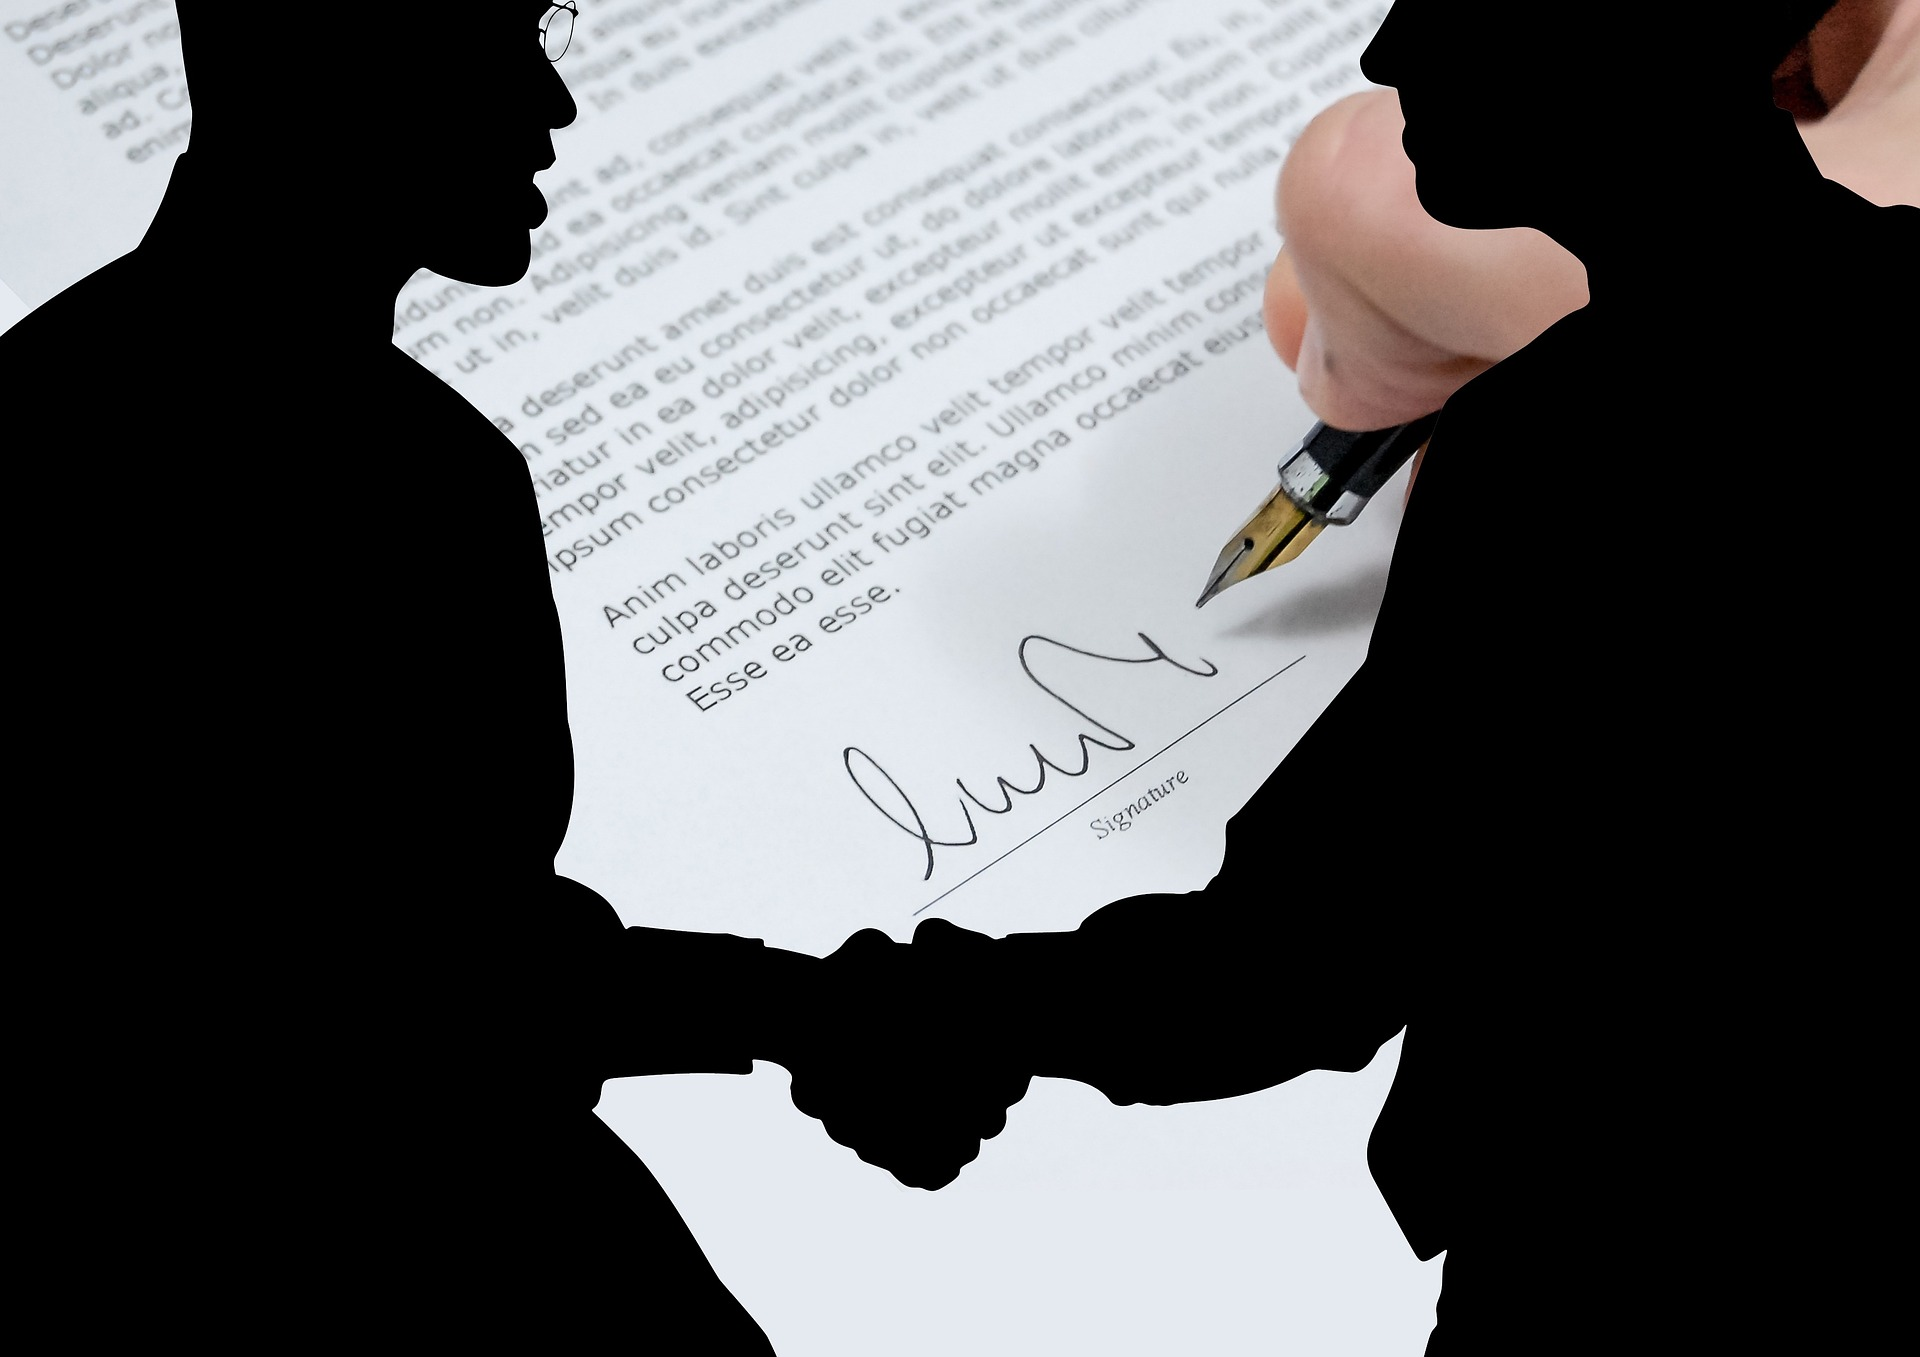 How to Set up a Contra deal agreement